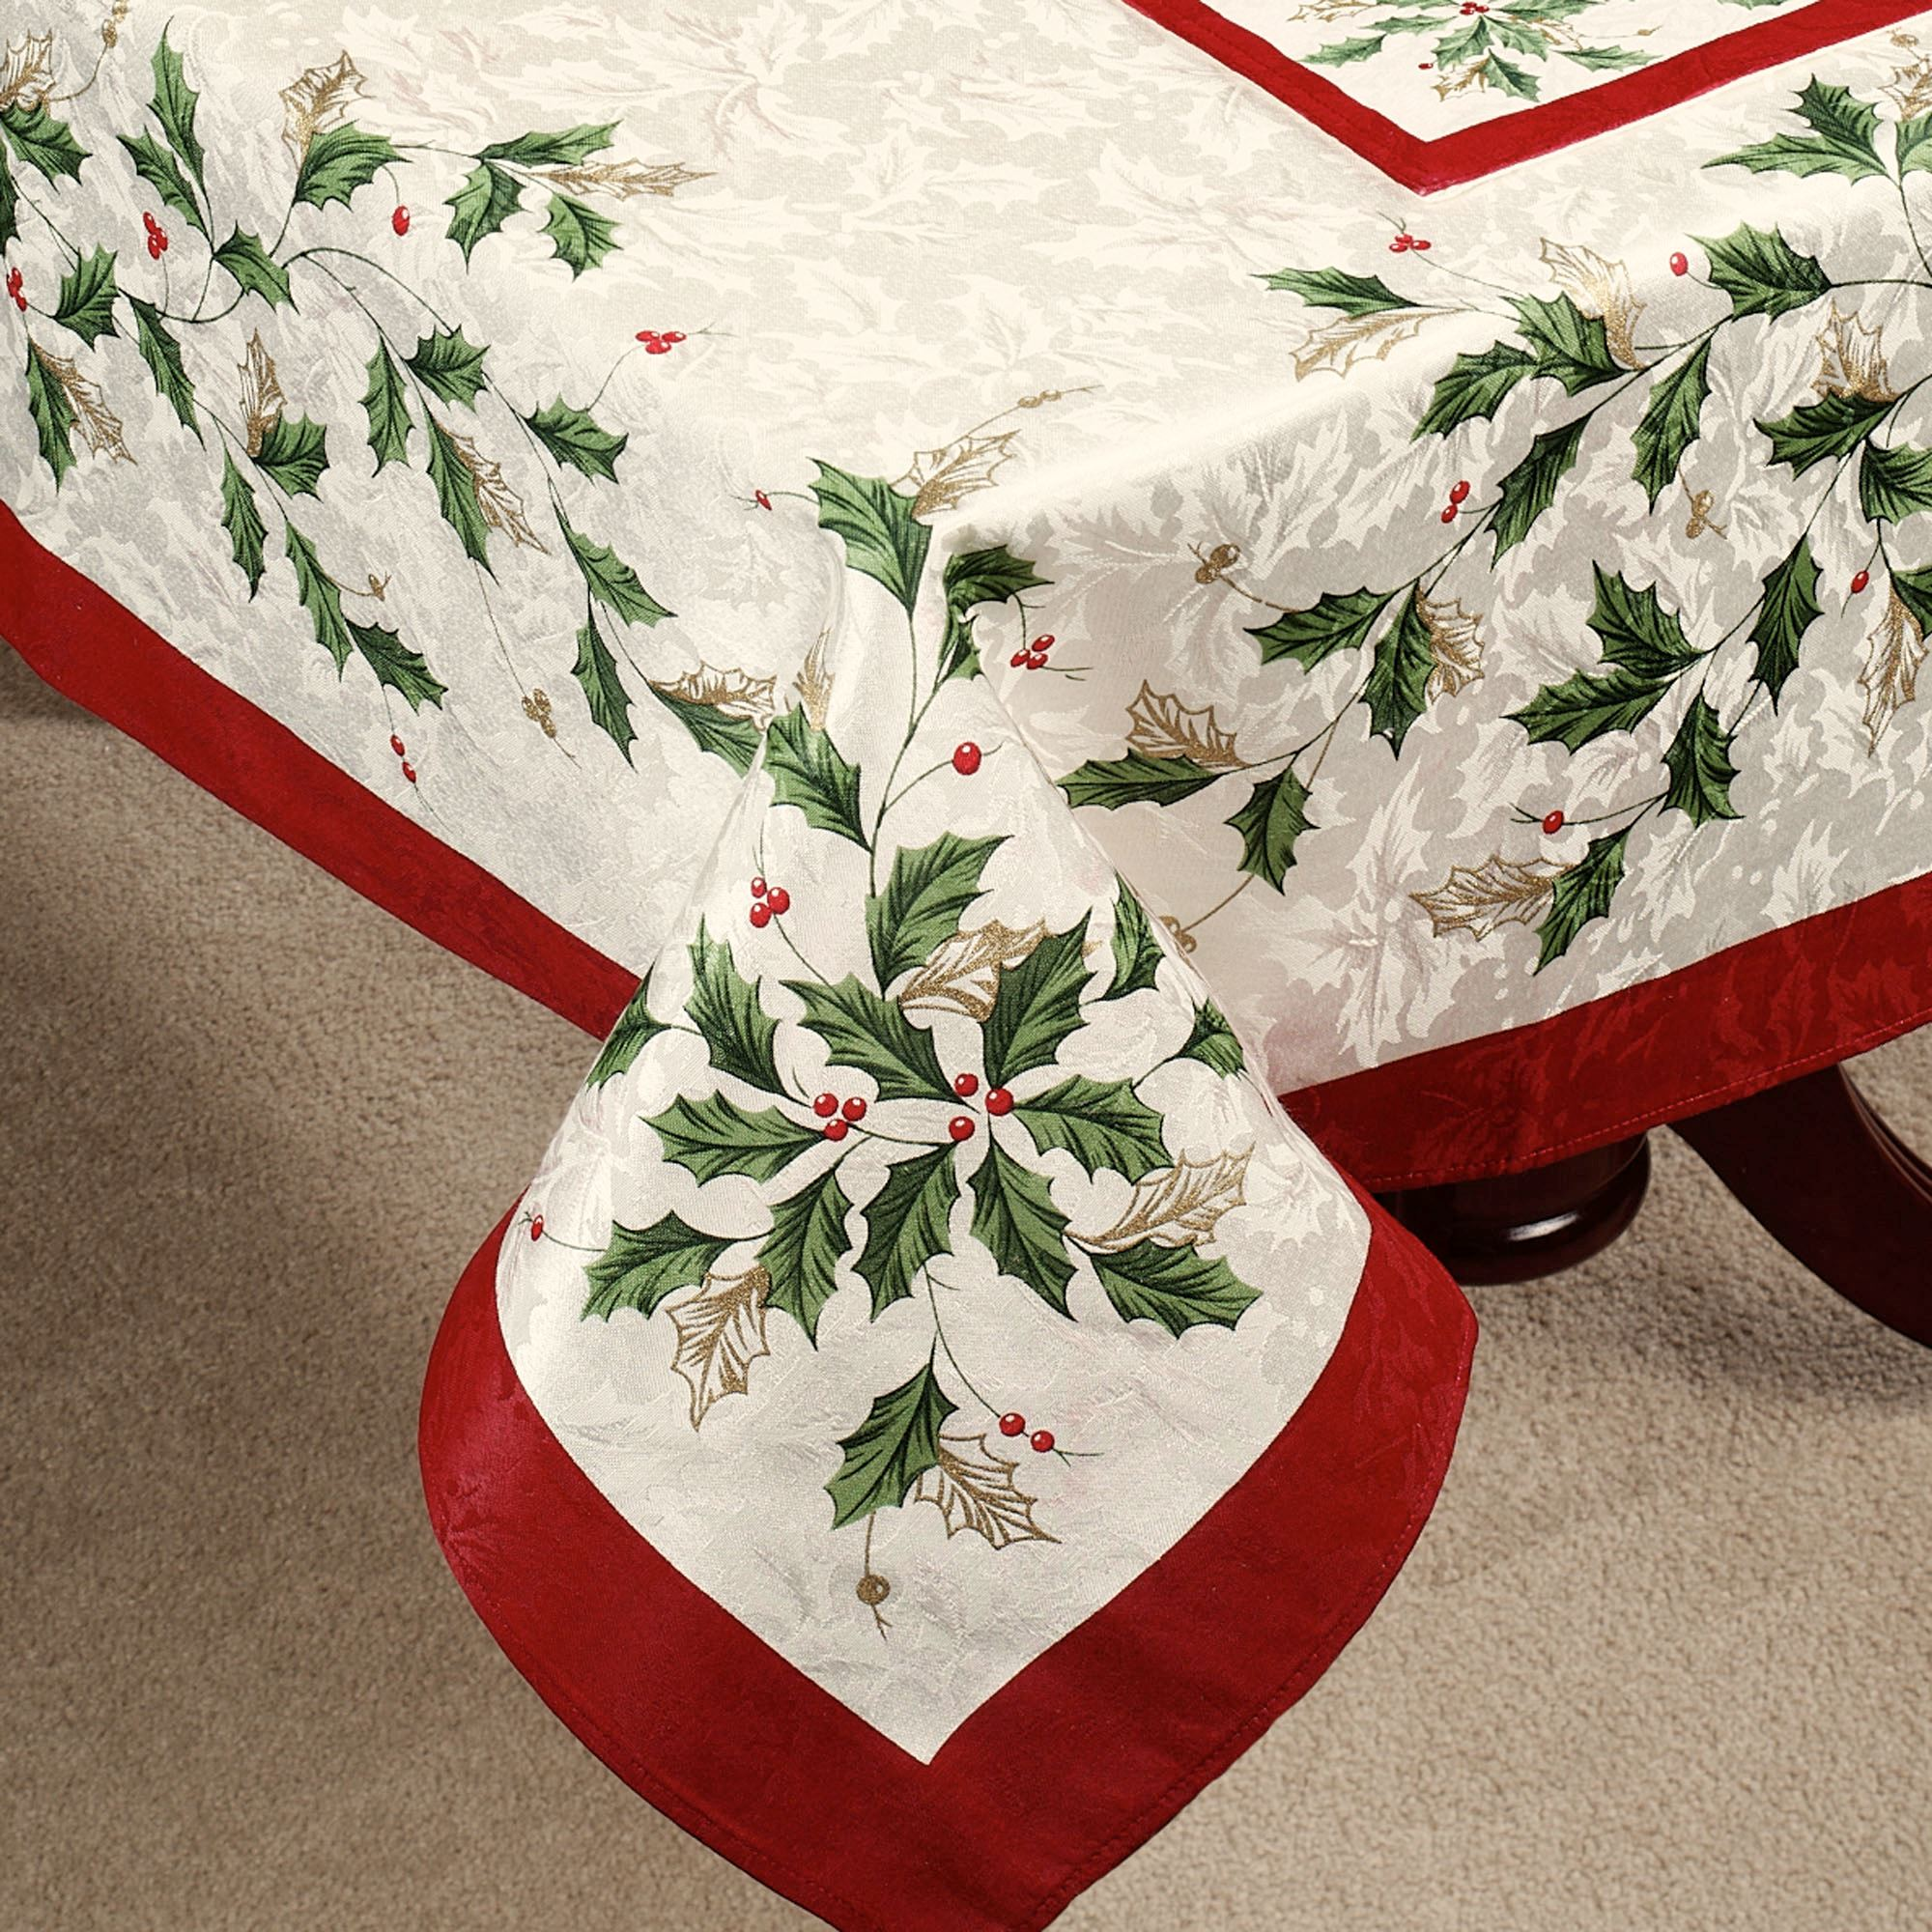 lenox christmas chair covers wicker dining chairs indoor holiday table linens oblong tablecloth ivory